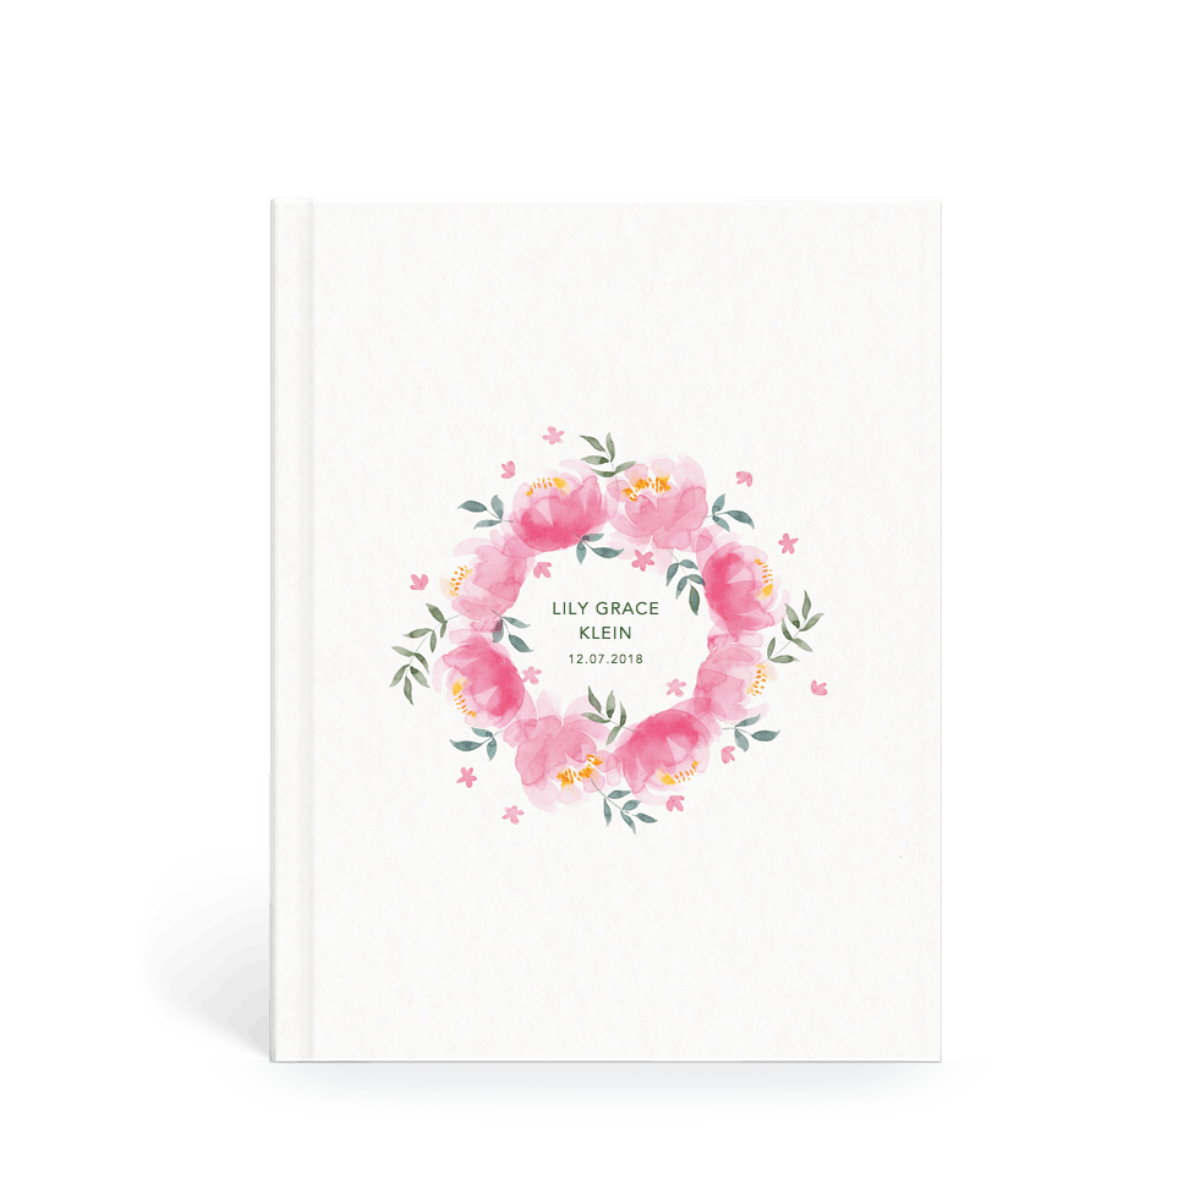 Https%3a%2f%2fwww.papier.com%2fproduct image%2f44143%2f26%2fpeonies 11100 front 1535729105.png?ixlib=rb 1.1